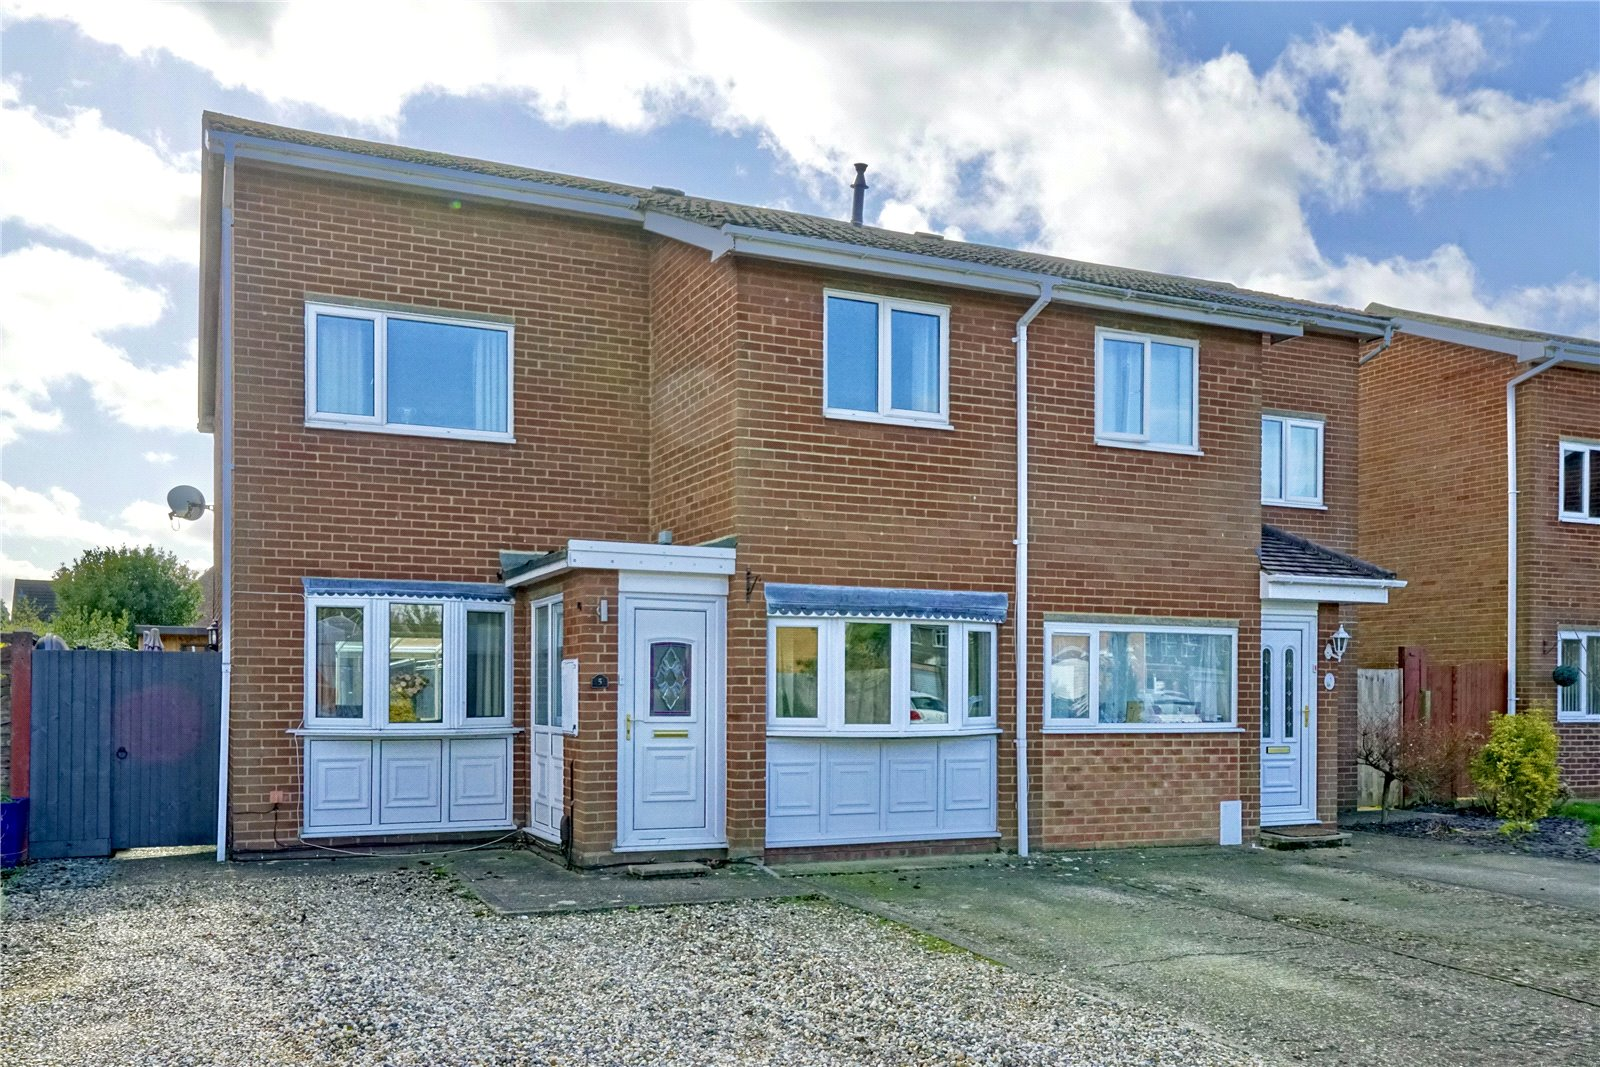 3 bed house for sale in Eaton Ford, PE19